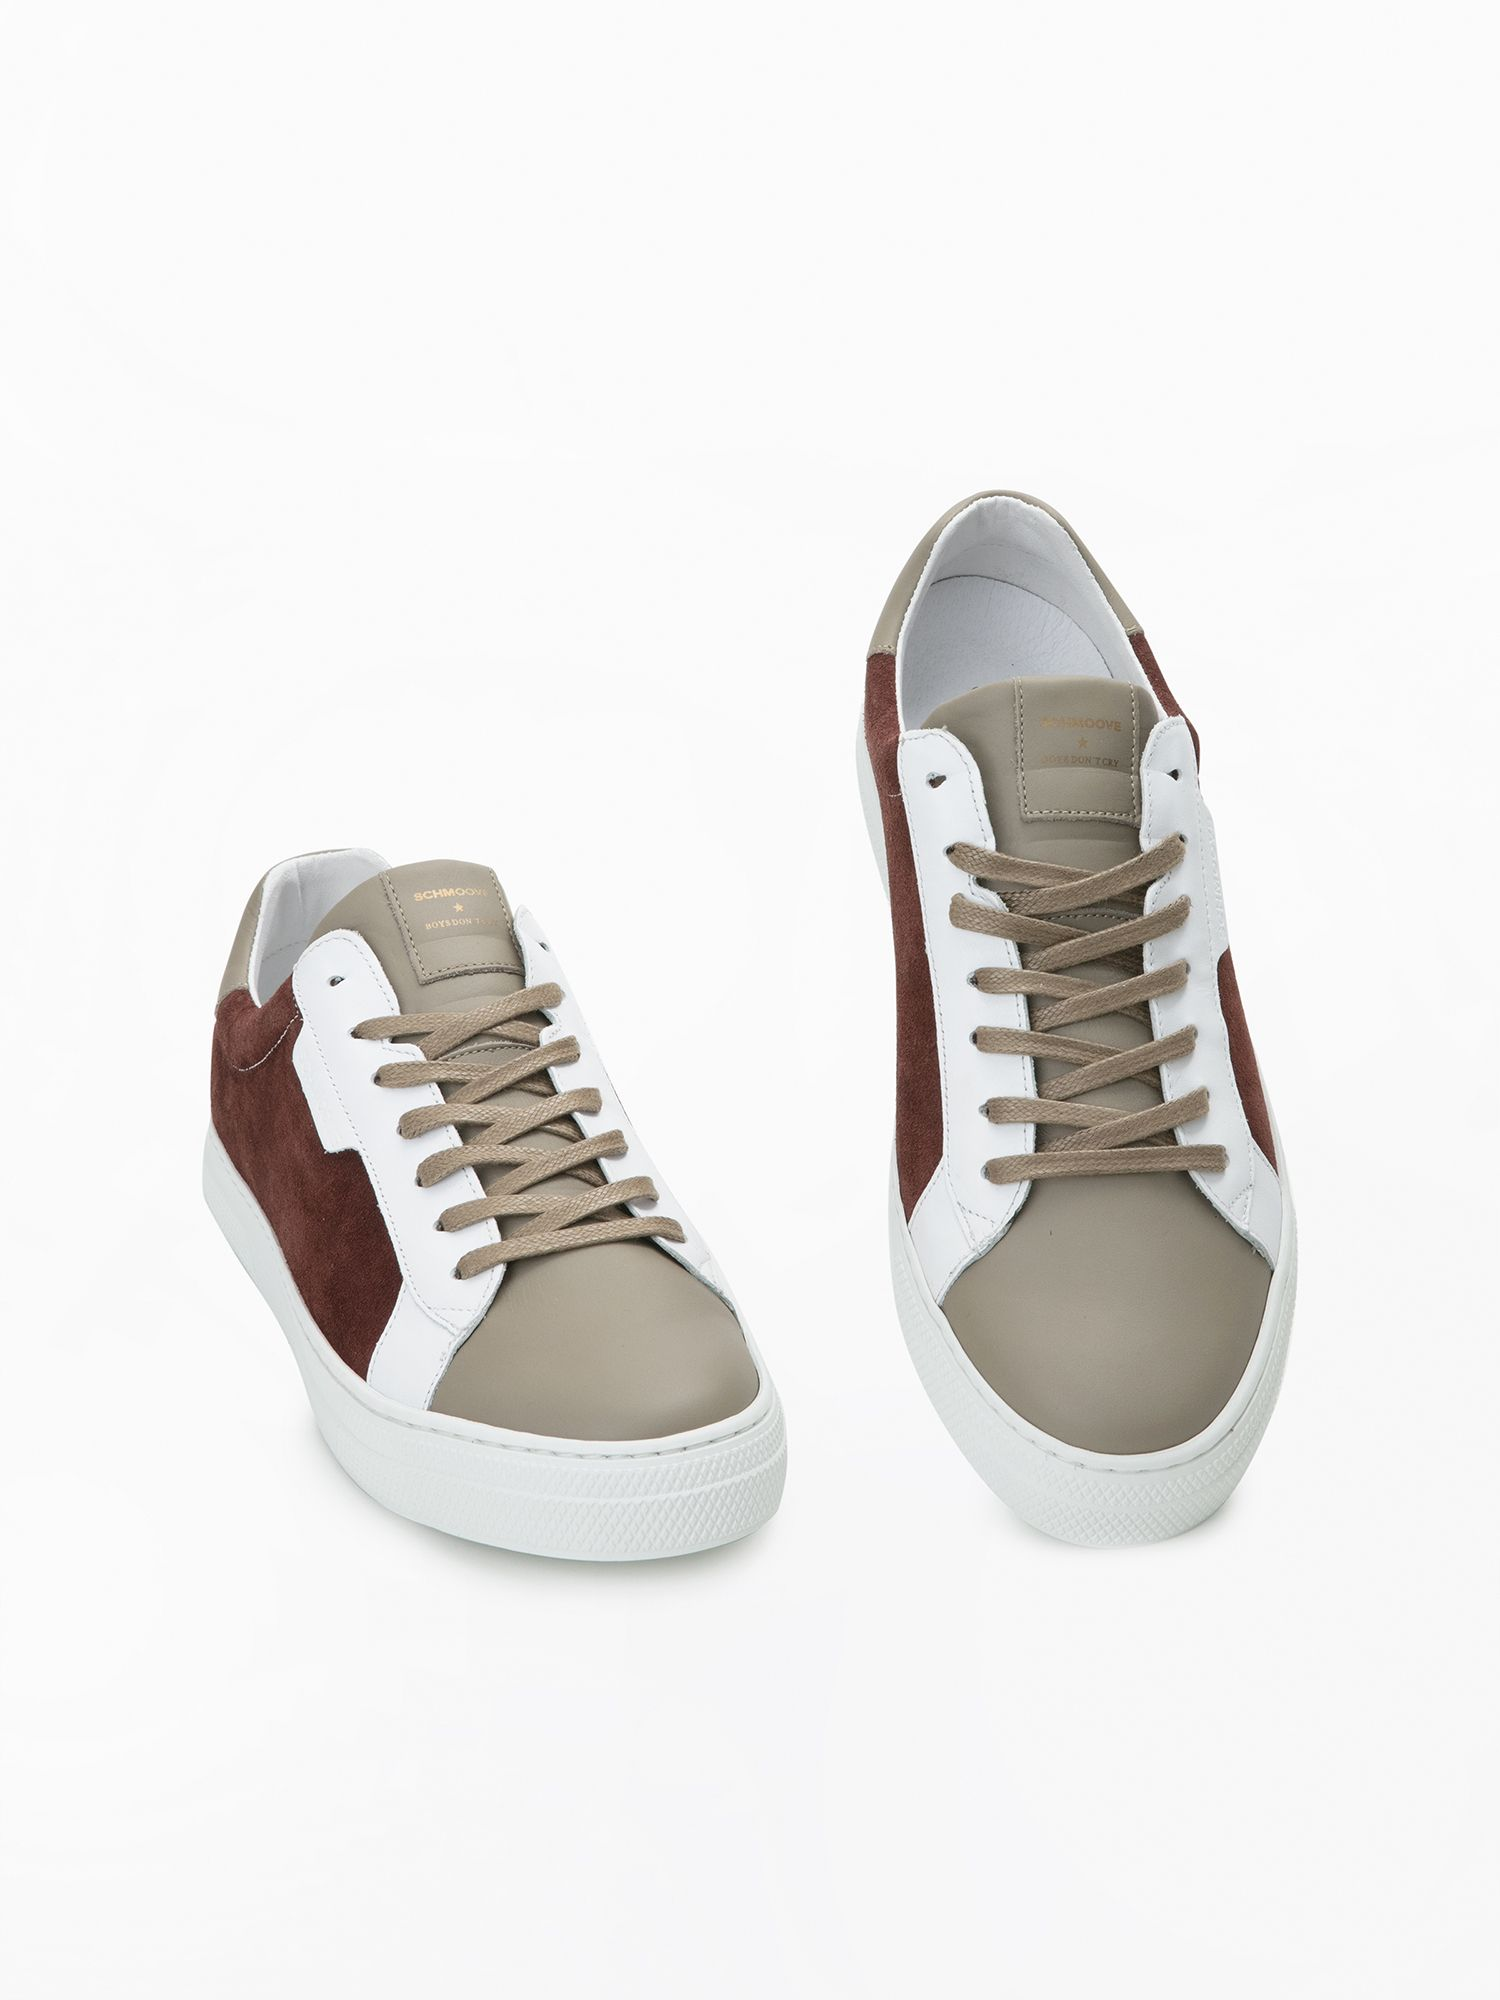 schmoove.fr SPARK CLAY - SUEDE/NAPPA - RUST/TAUPE